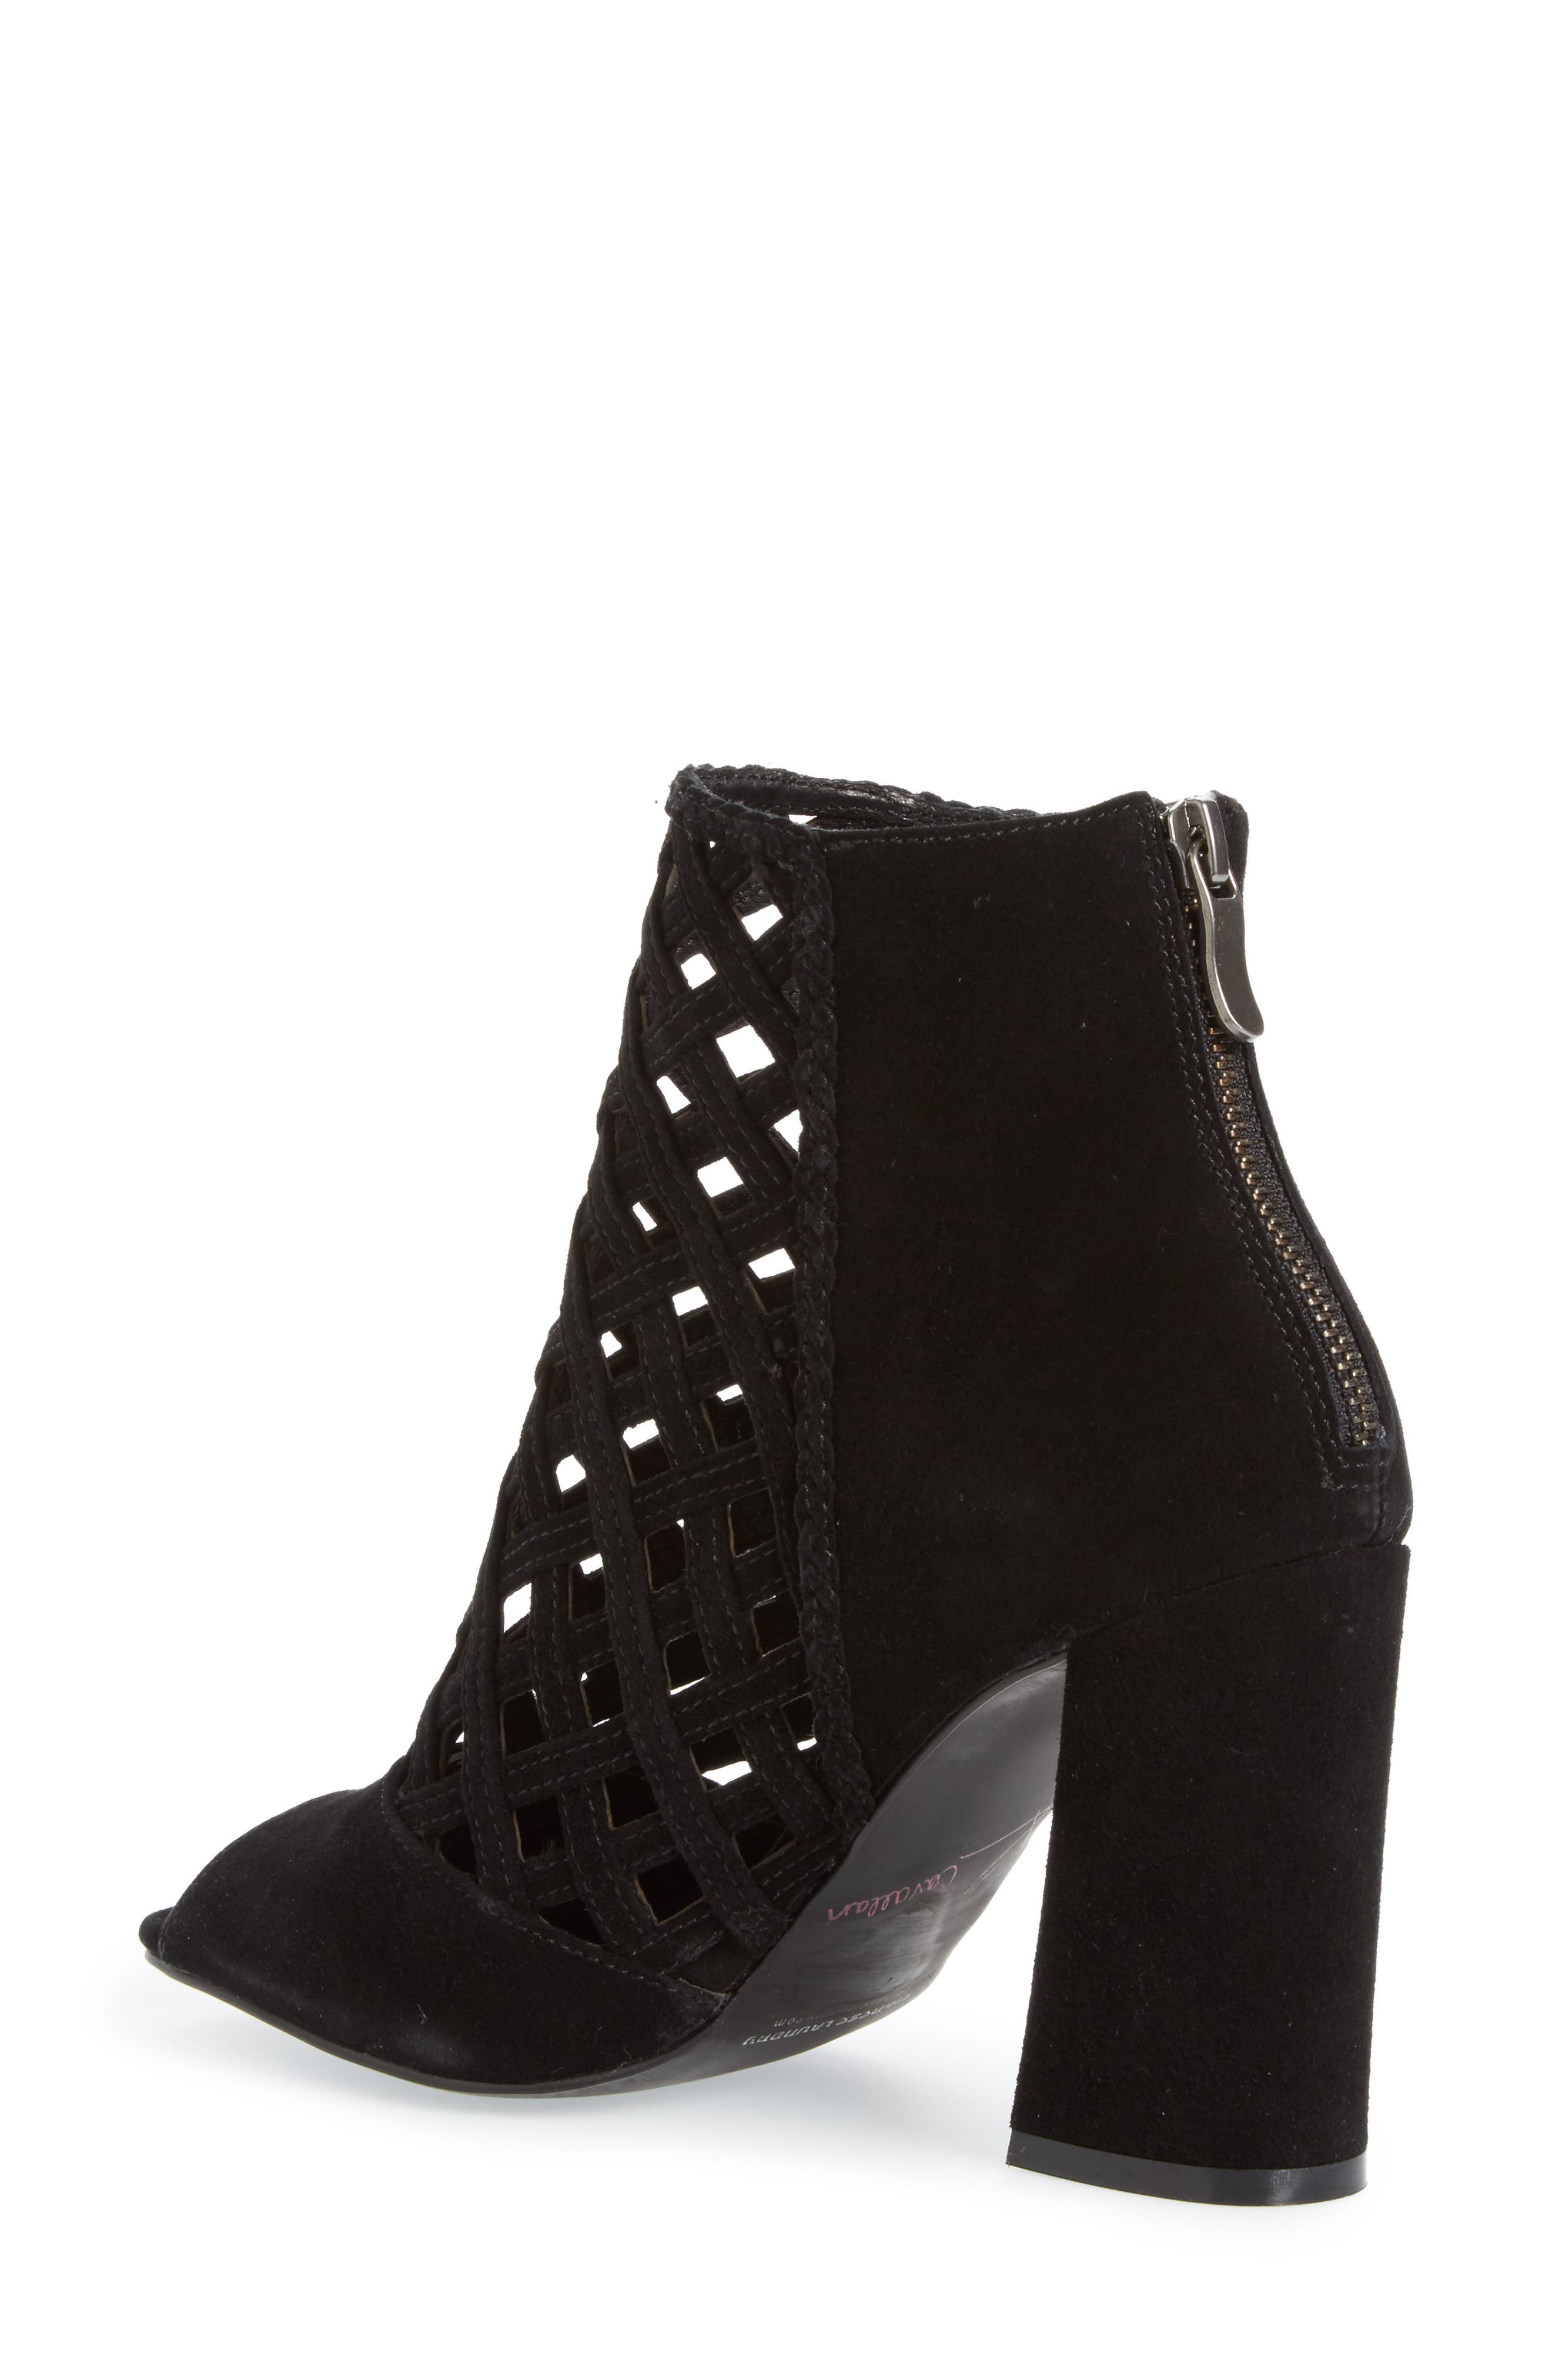 Luxembourg Cage Peep Toe Bootie,                             Alternate thumbnail 2, color,                             001